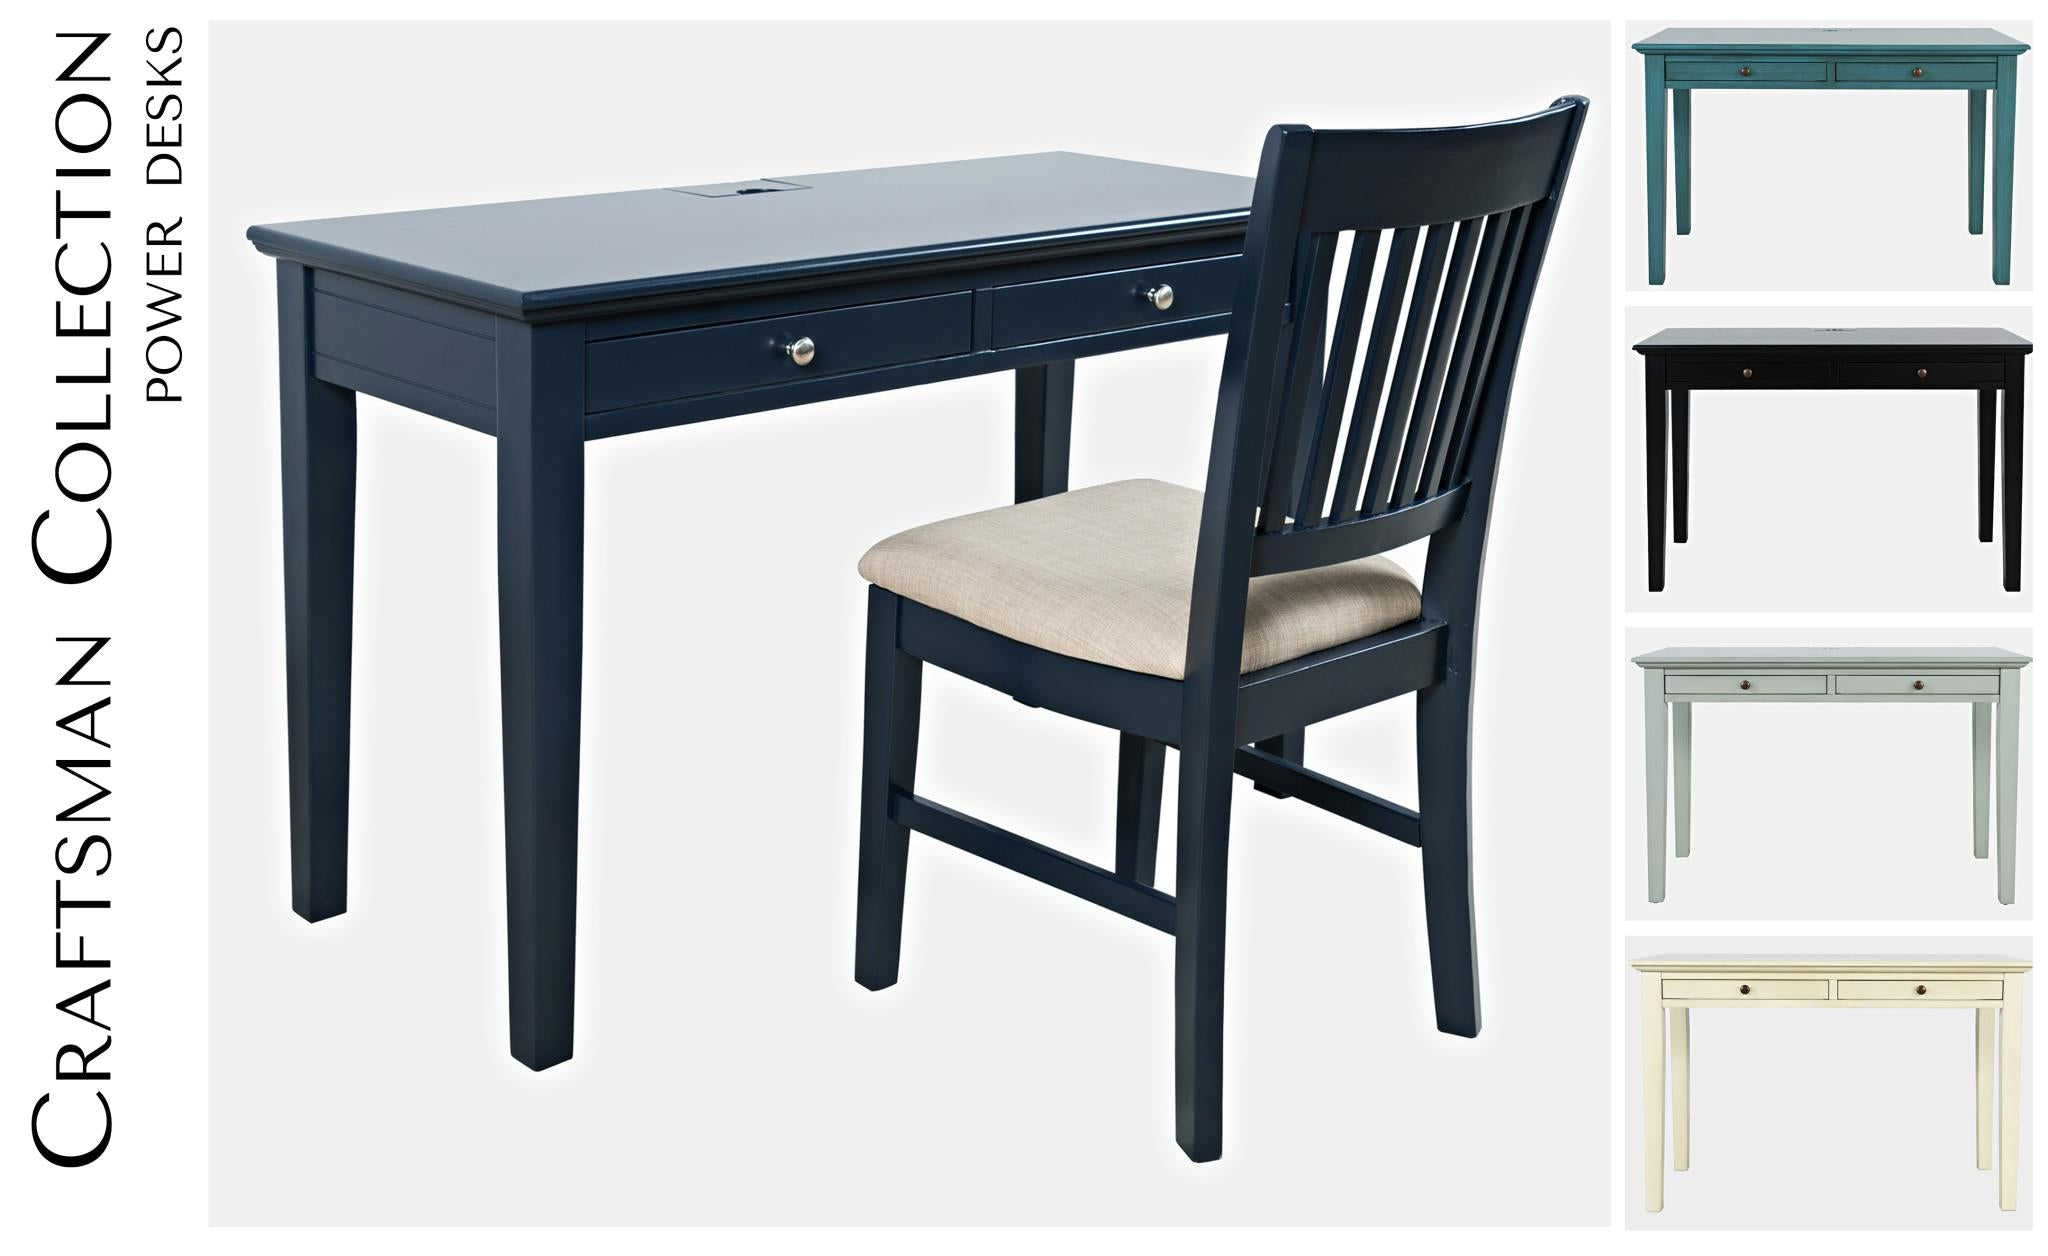 Craftman Power Desk & Chair - Lifestyle Furniture